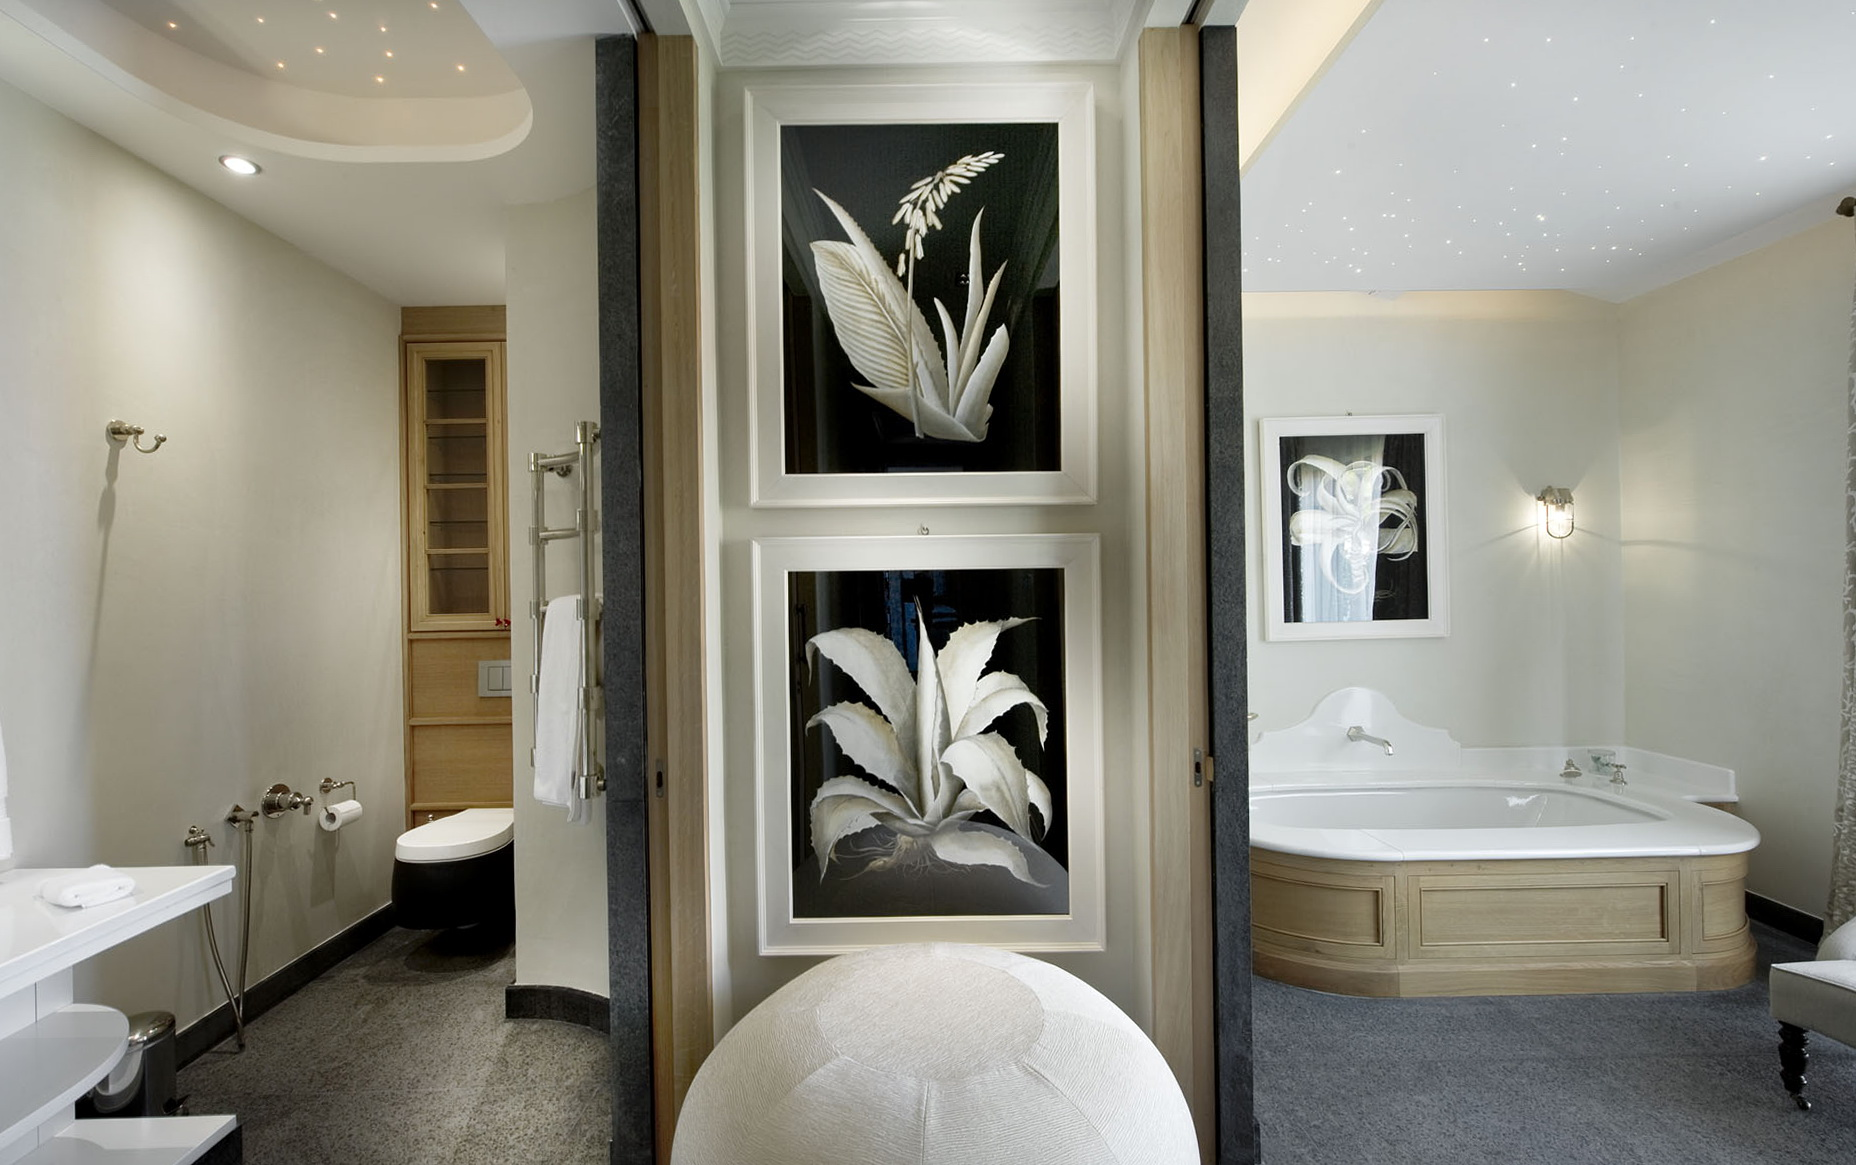 Black And White Wall Art For Bathroom